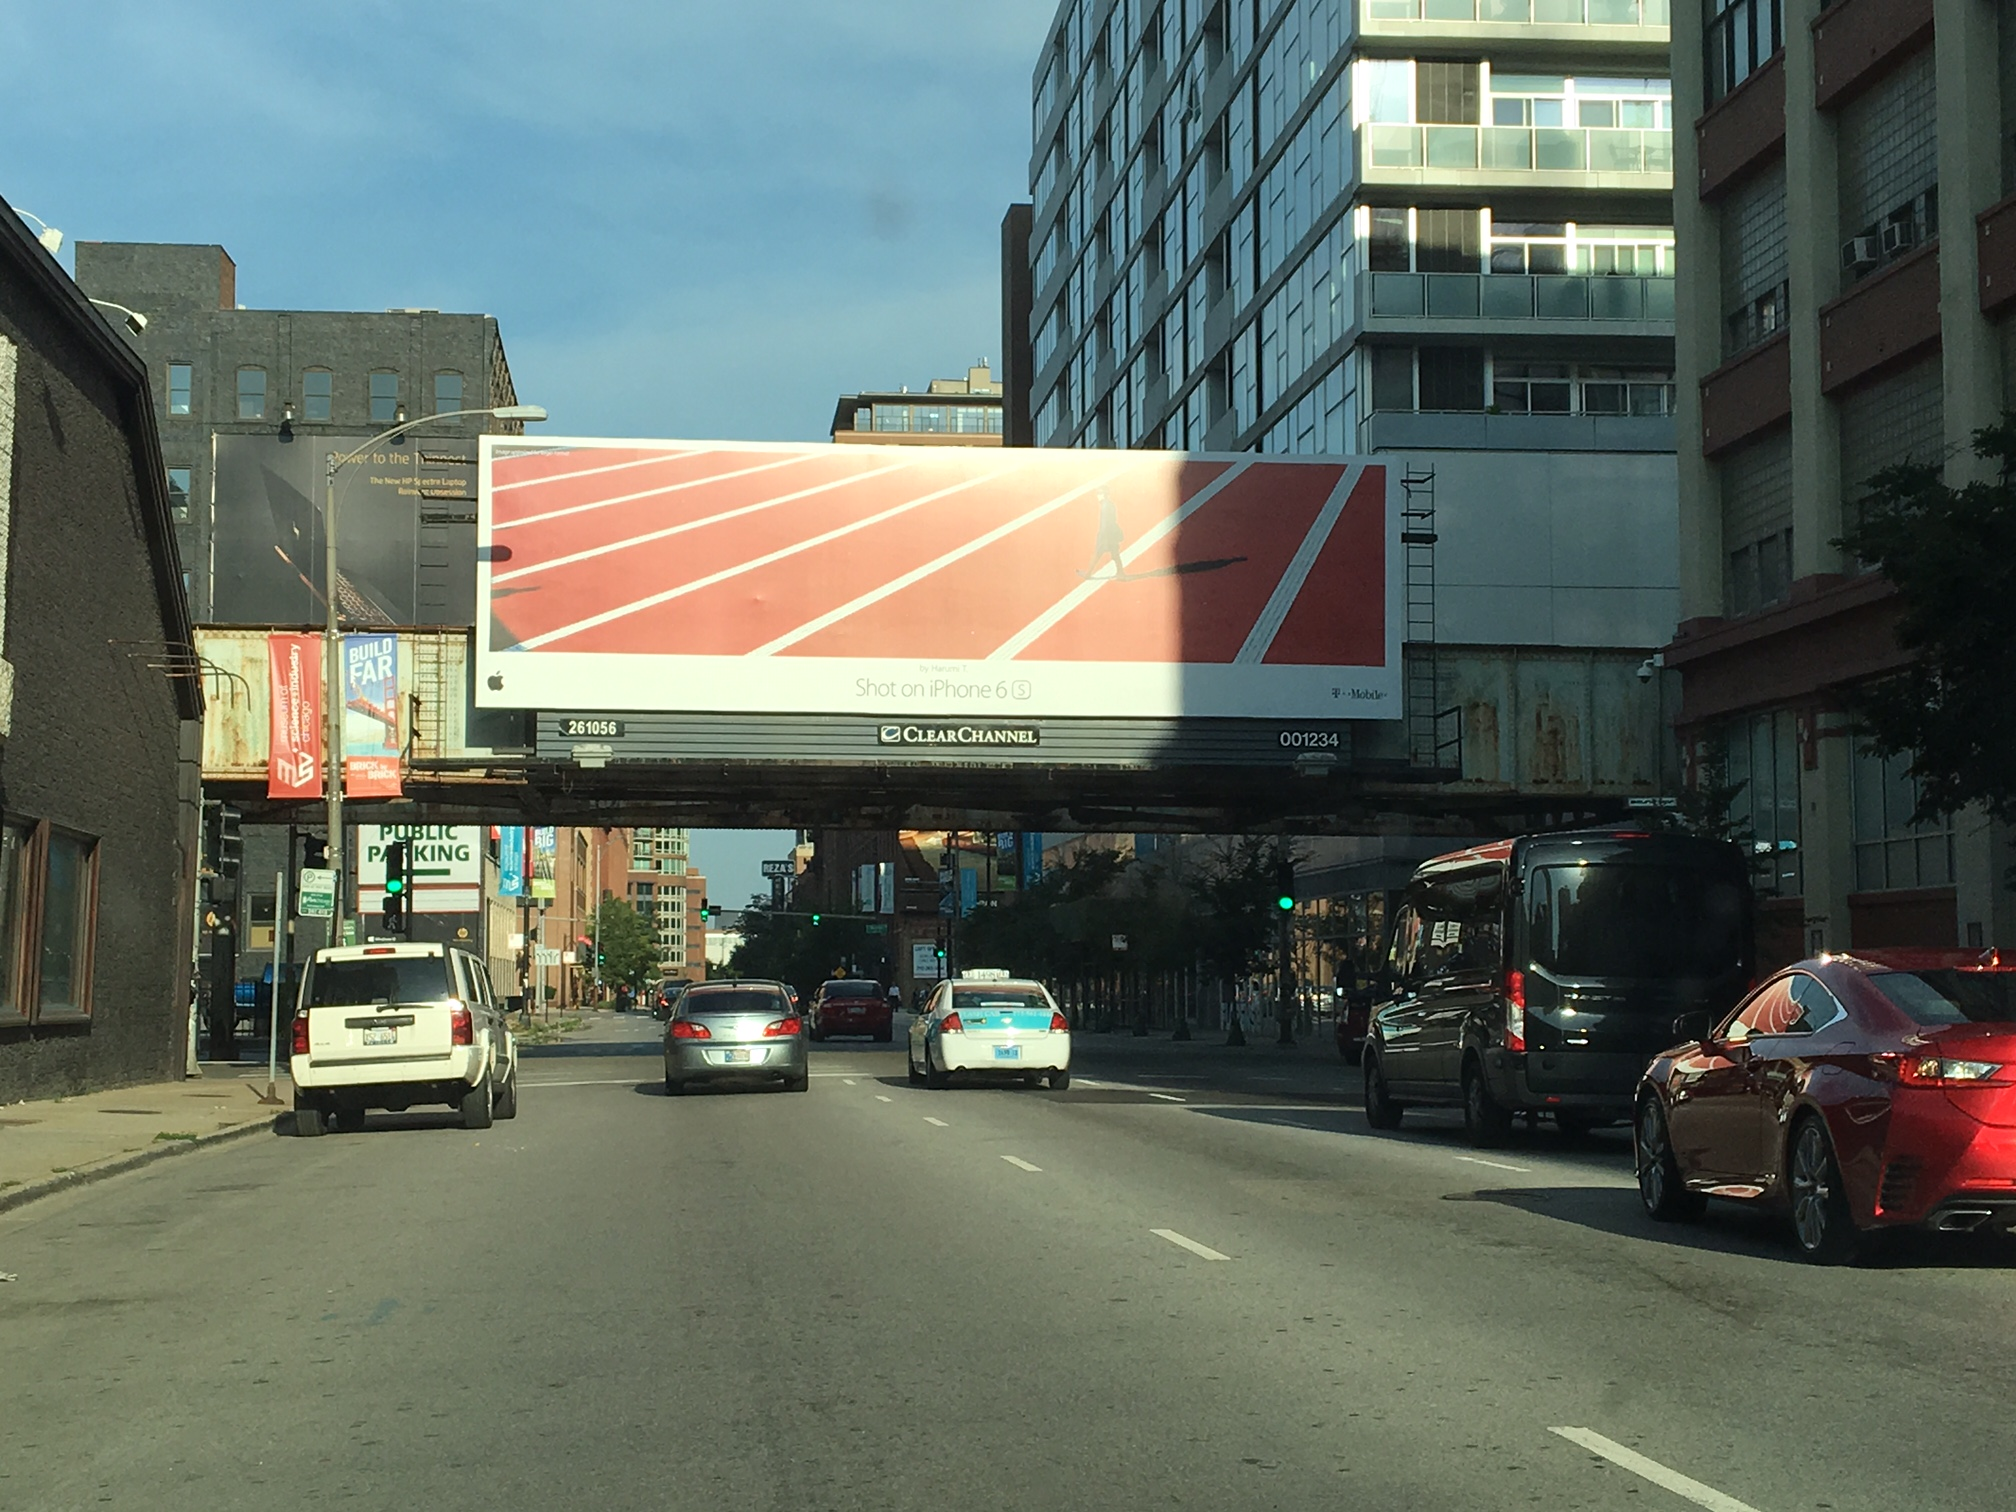 Billboard In Middle Of Road